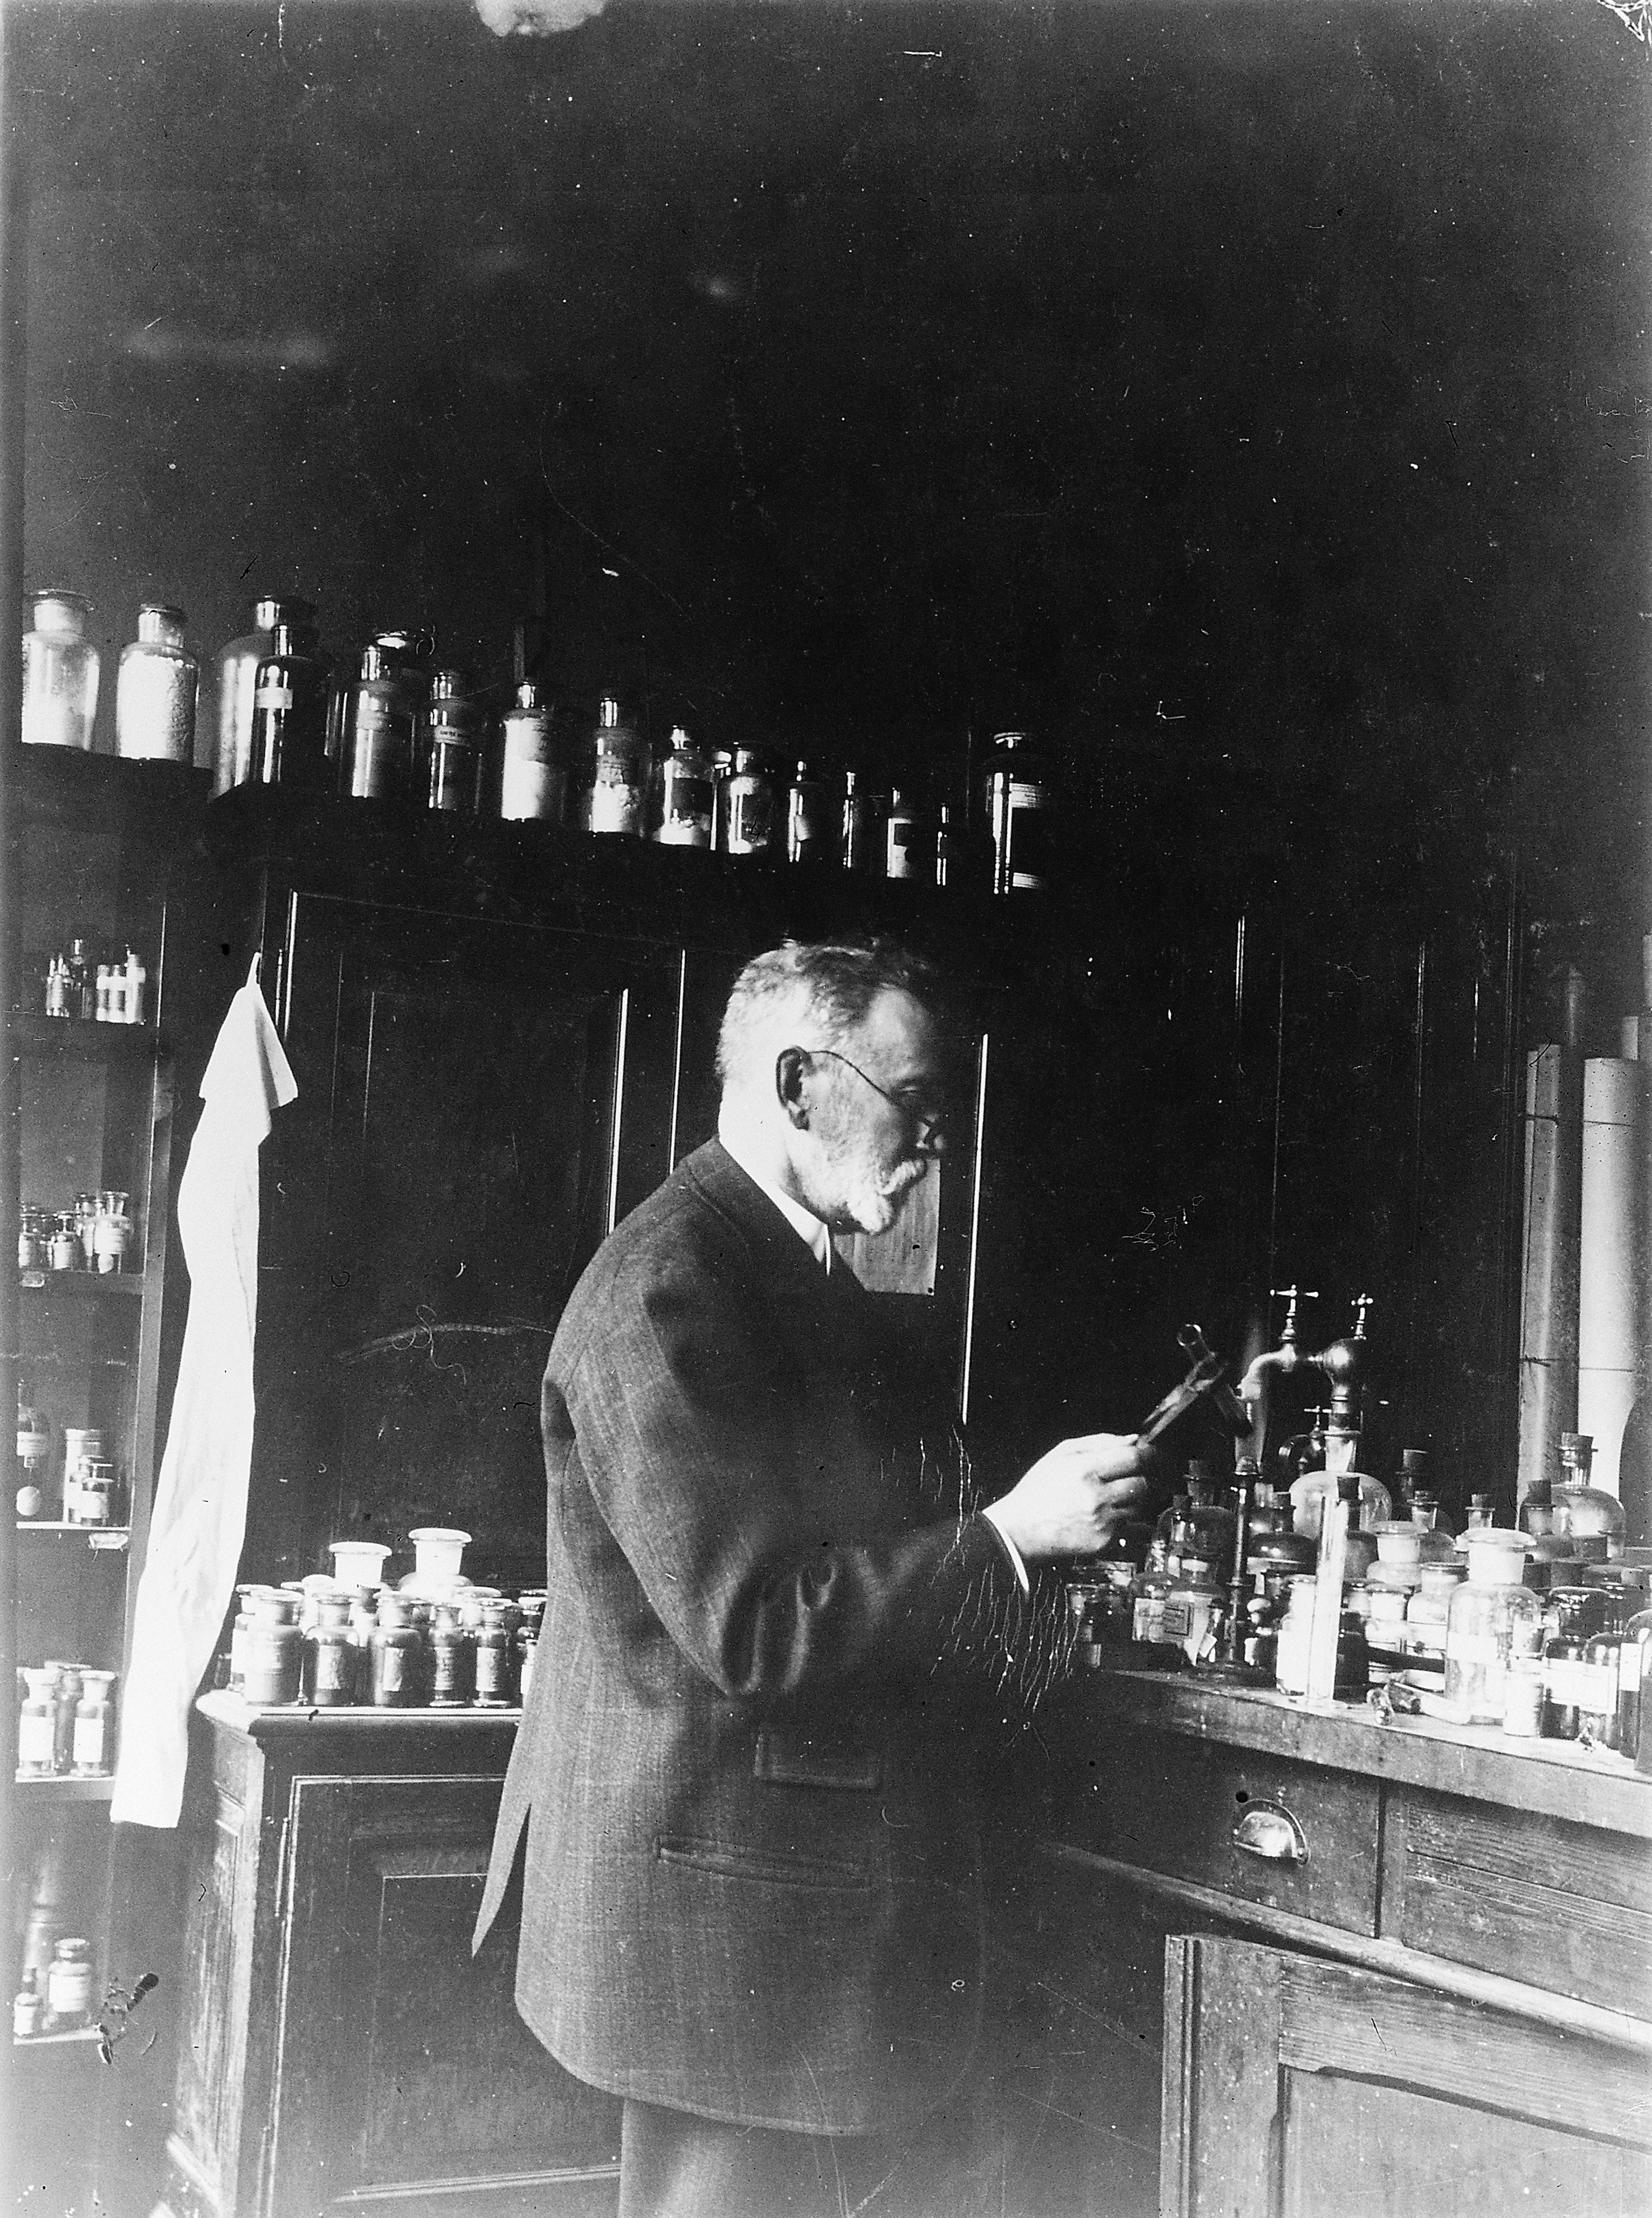 the life and works of paul ehrlich These influences would become quite apparent in ehrlich's famous writings later  on, after he had become an accomplished biologist ehrlich.